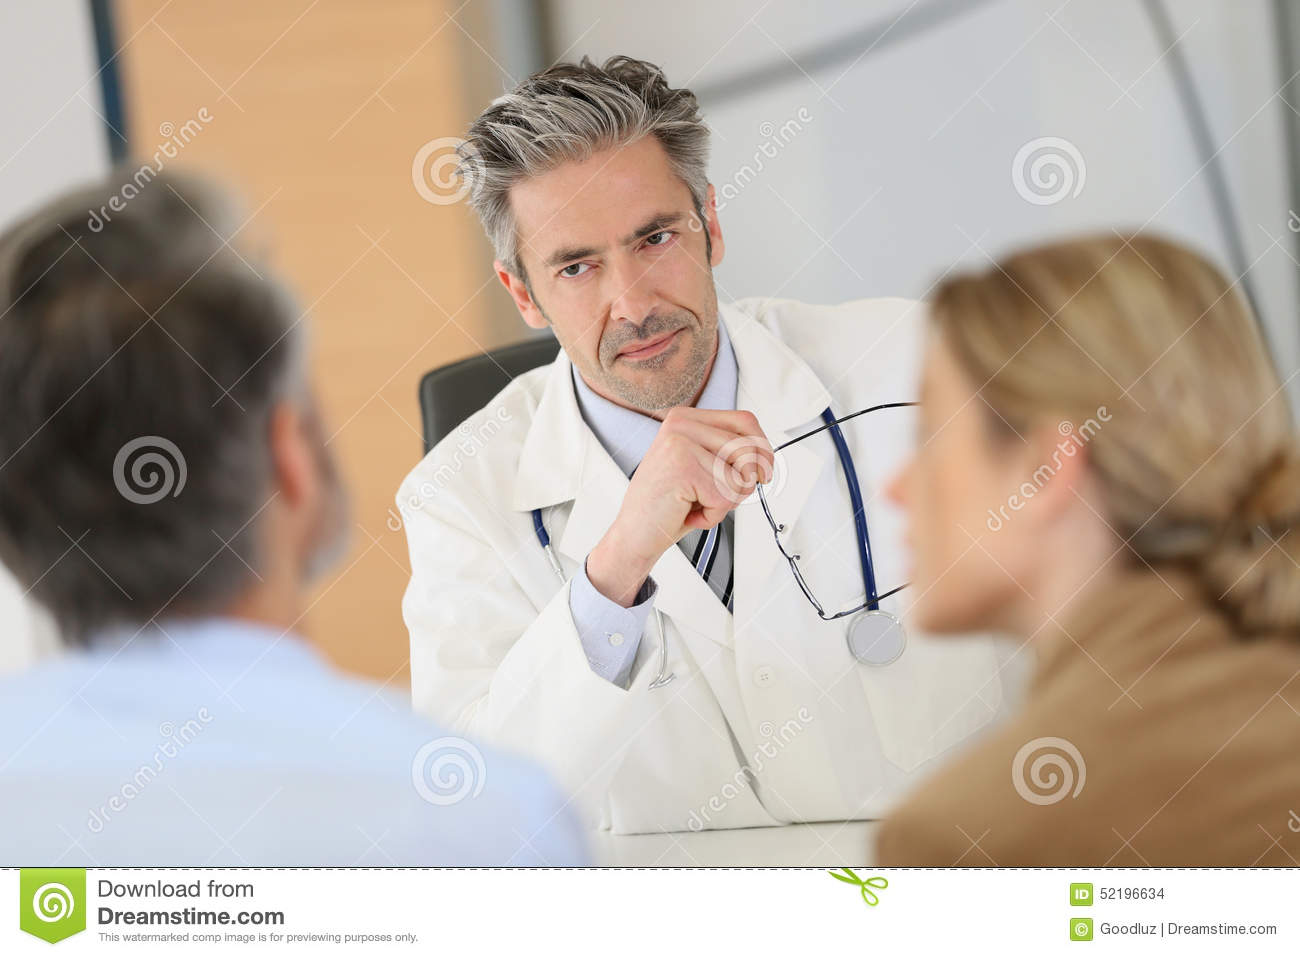 Patients meeting doctor for a medical advice